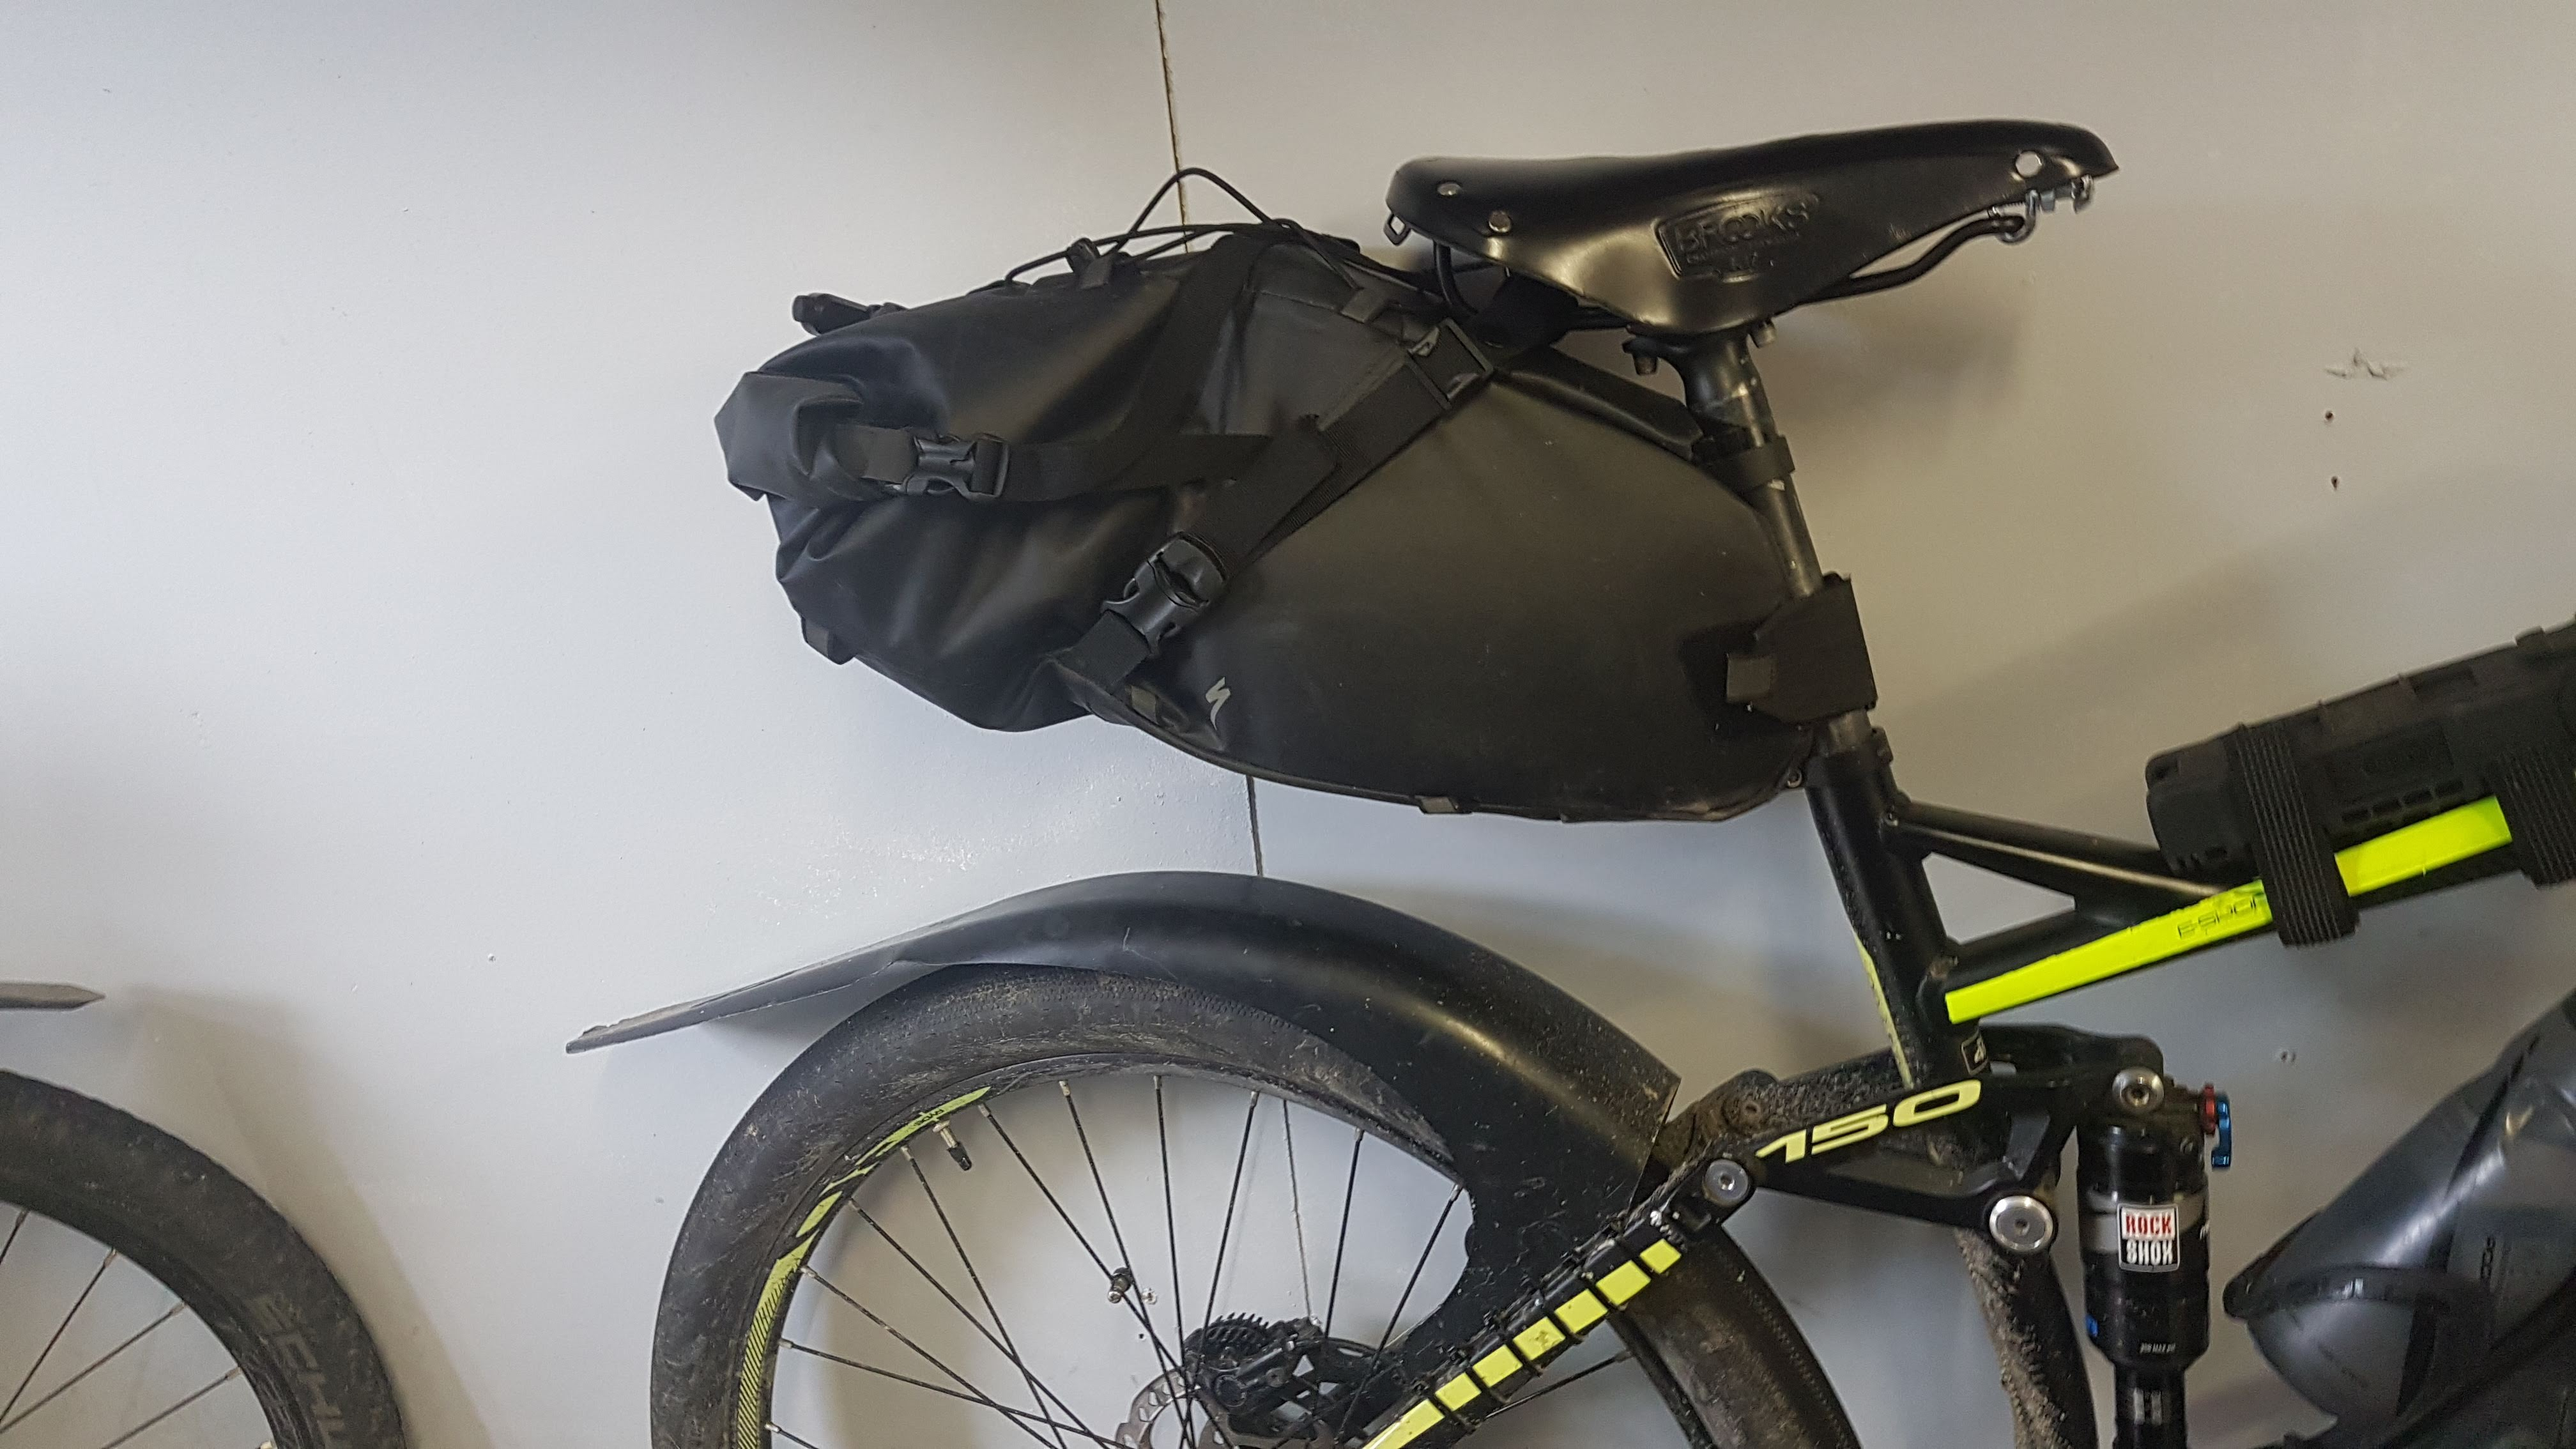 Holds the bag up much tighter to the saddle